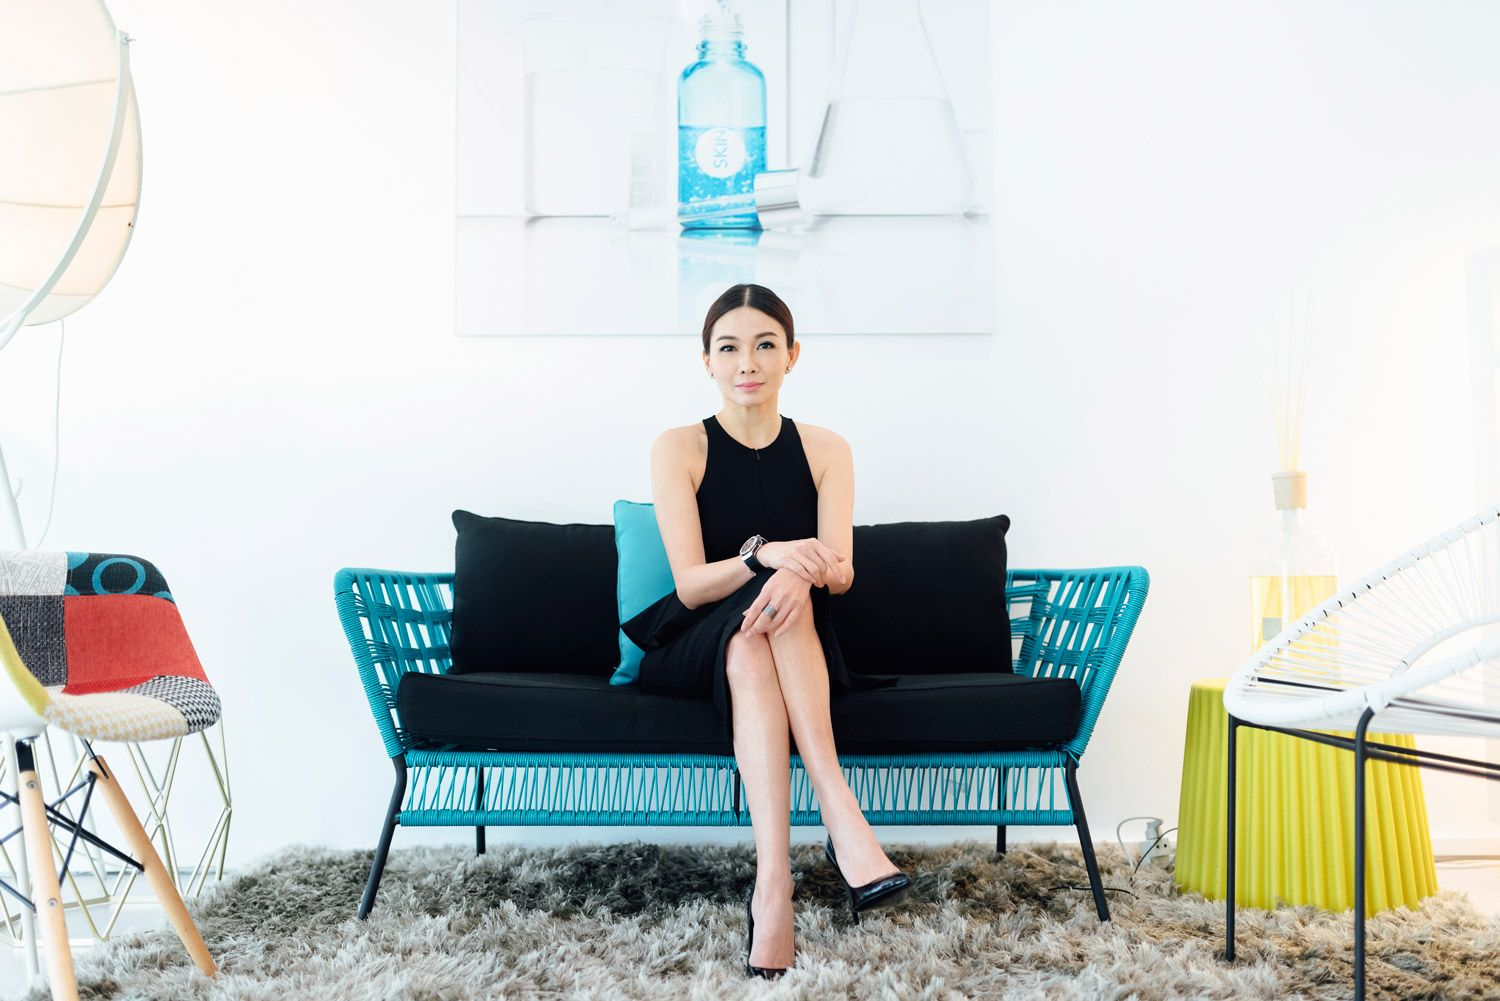 5 Minutes With... Sabrina Tan, Founder and CEO of Skin Inc